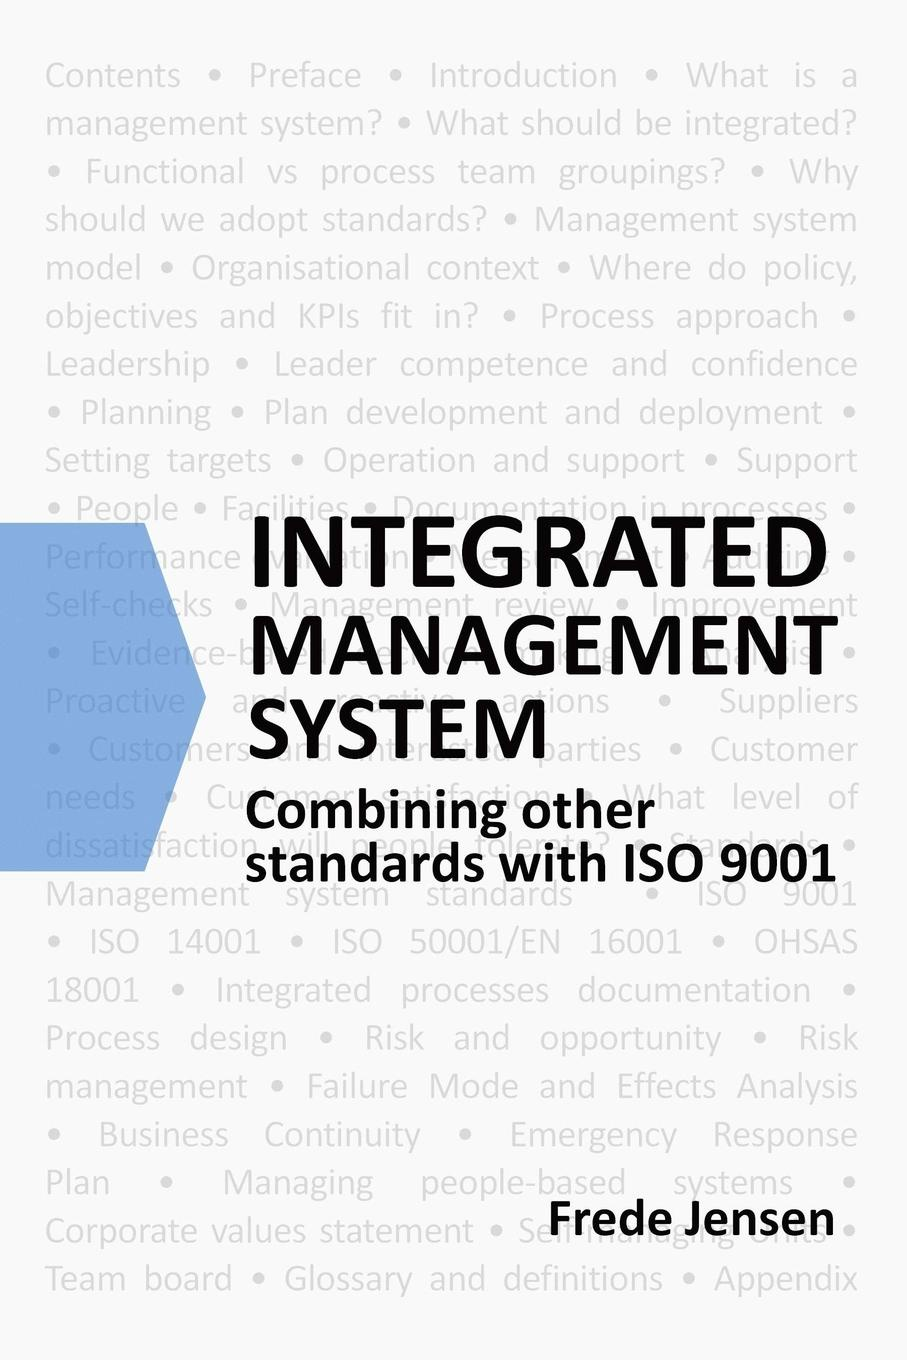 Frede Jensen Integrated Management System. Combining other standards with ISO 9001 недорго, оригинальная цена